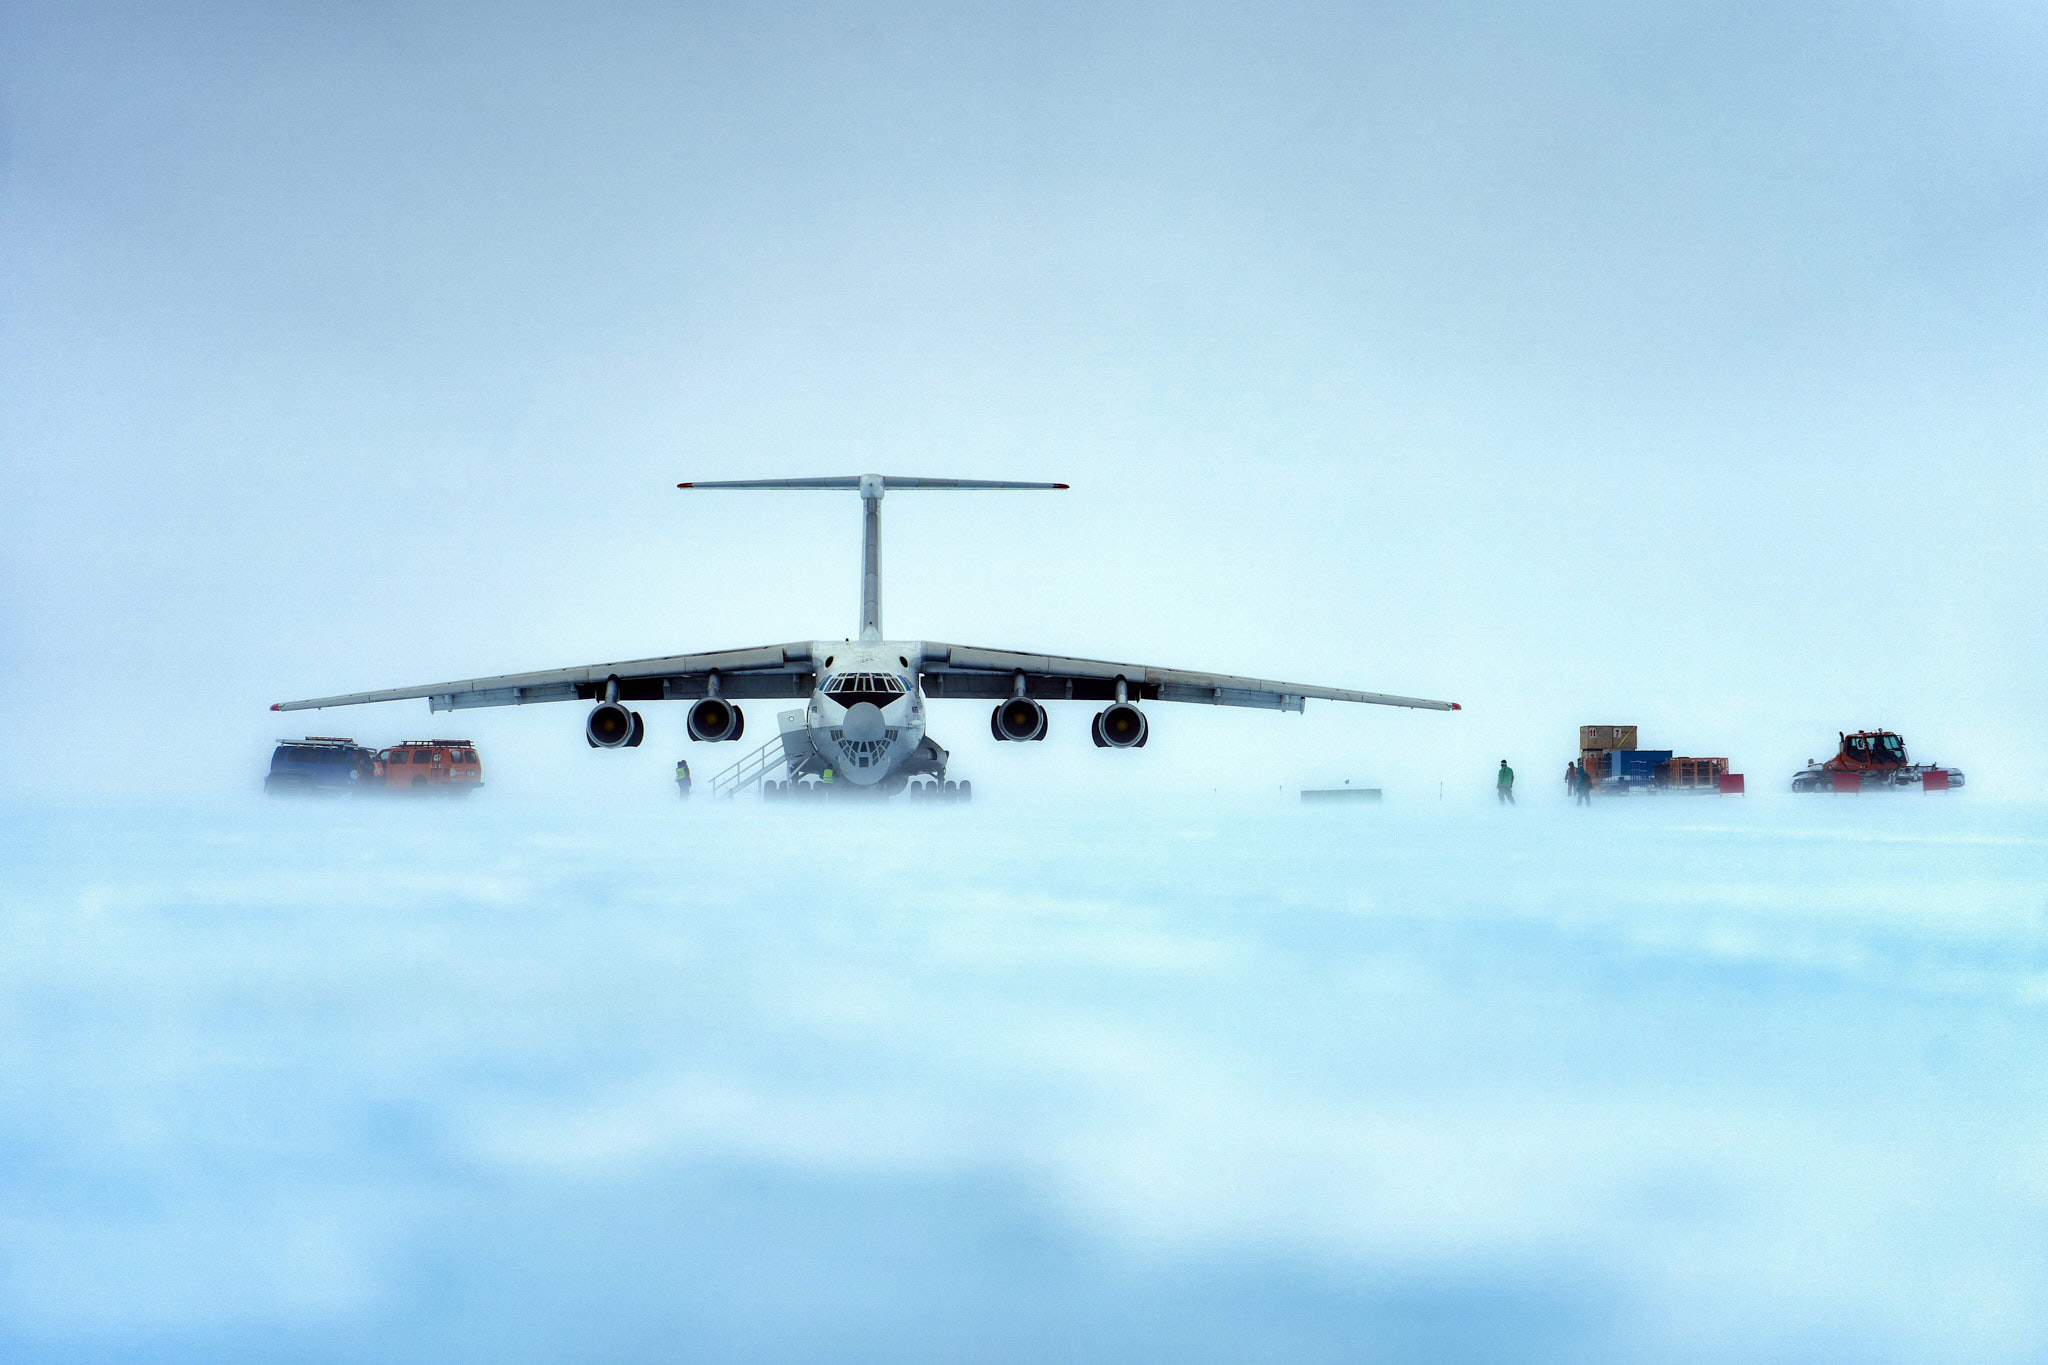 The enormous Ilyushin IL-76 which flew us into Antarctica. Pictured here sitting on the blue ice runway that serves the camp on Union Glacier